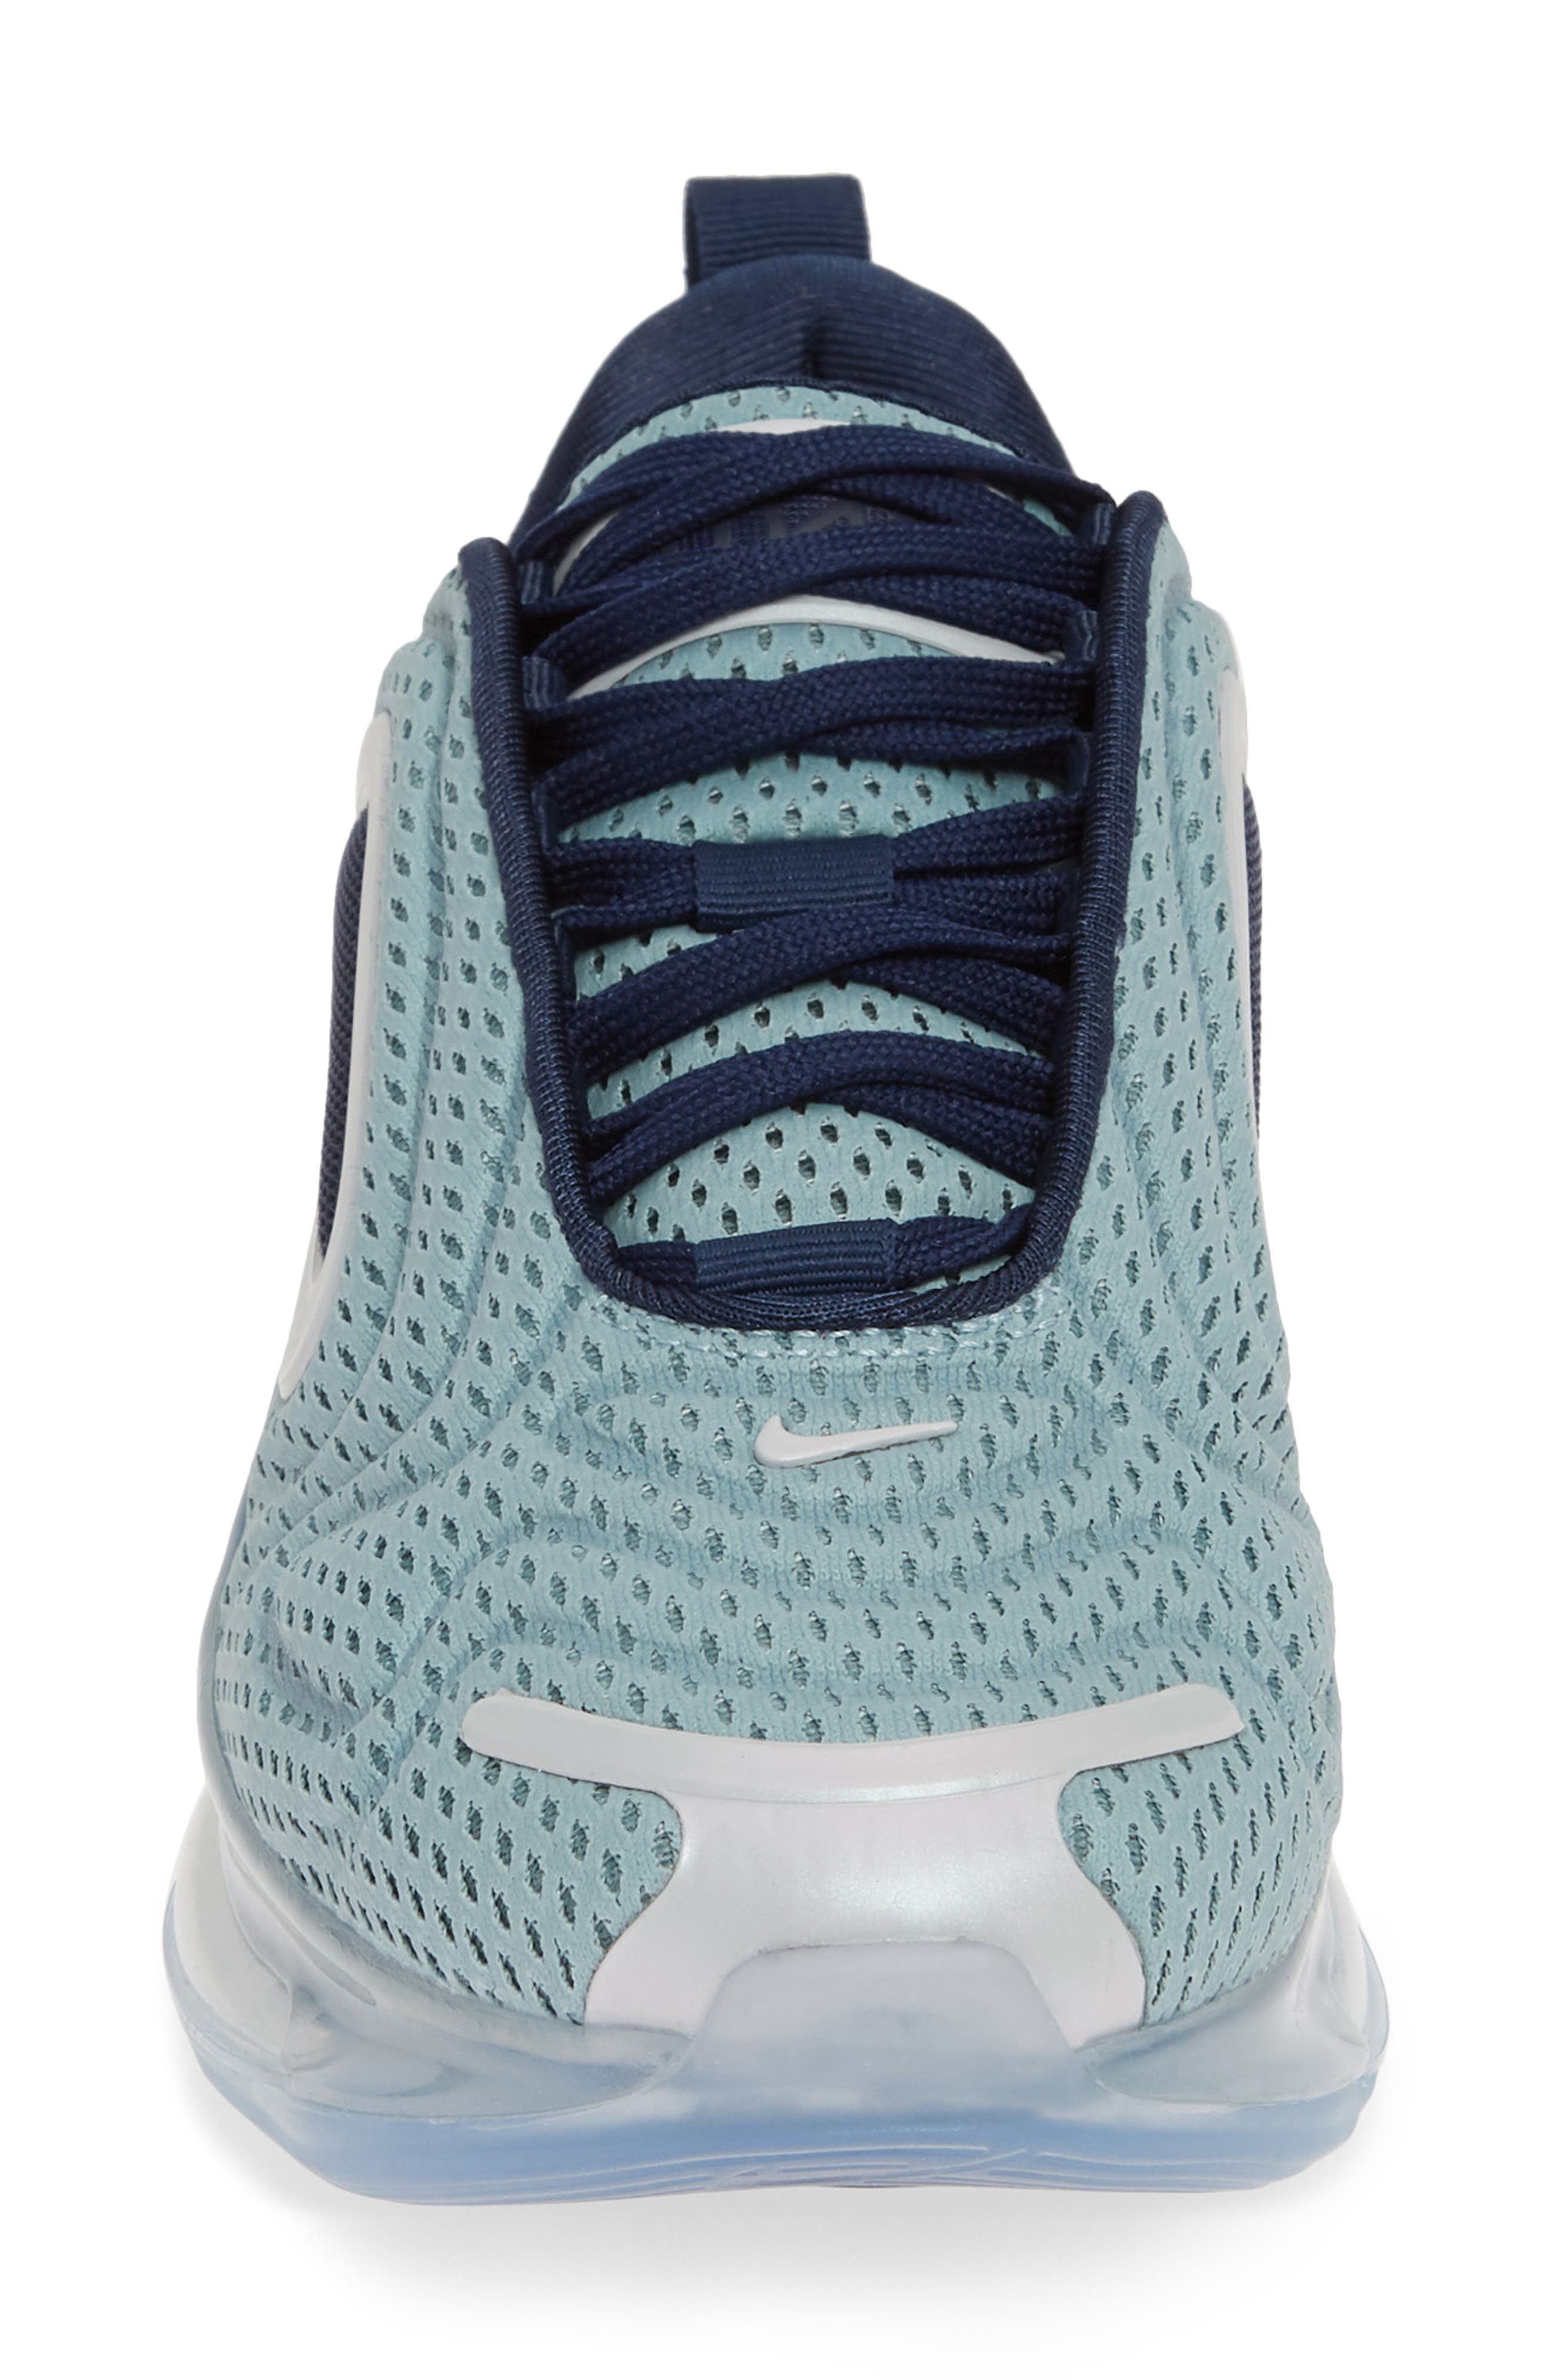 Air Max 720 Sneaker,                             Alternate thumbnail 4, color,                             METALLIC SILVER/ MIDNIGHT NAVY